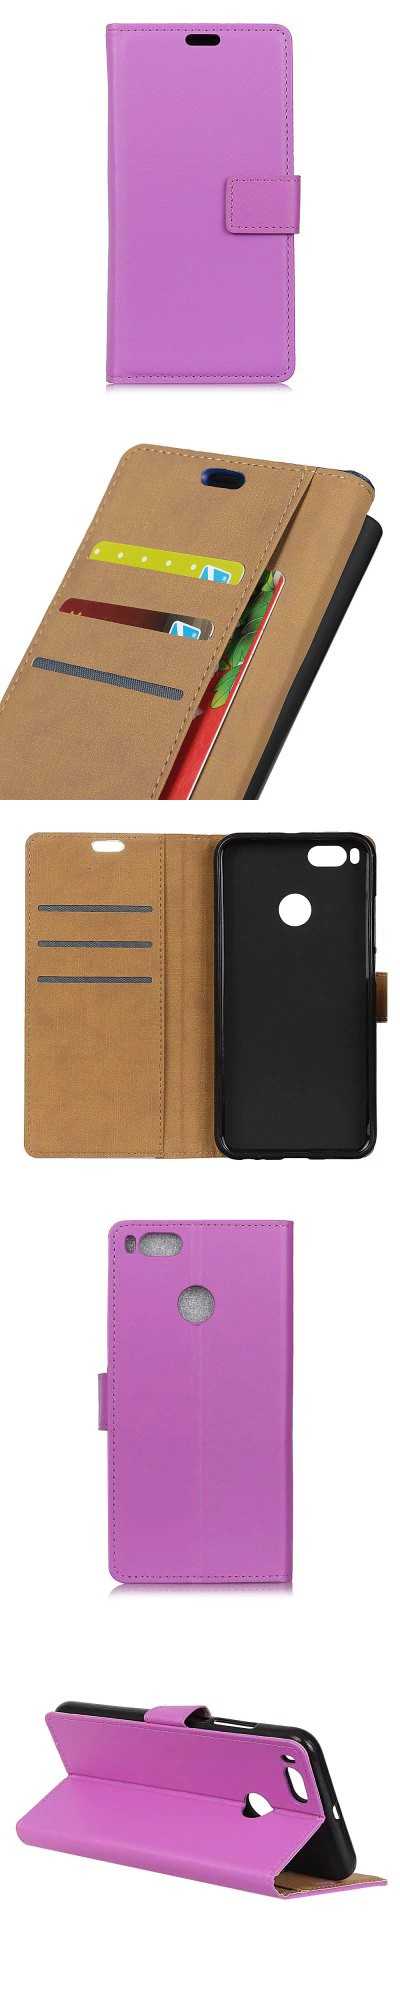 Pattumiera Xiaomi One Hundred Lines Wallet Stand Leather Phone Case For Xiaomi 5x